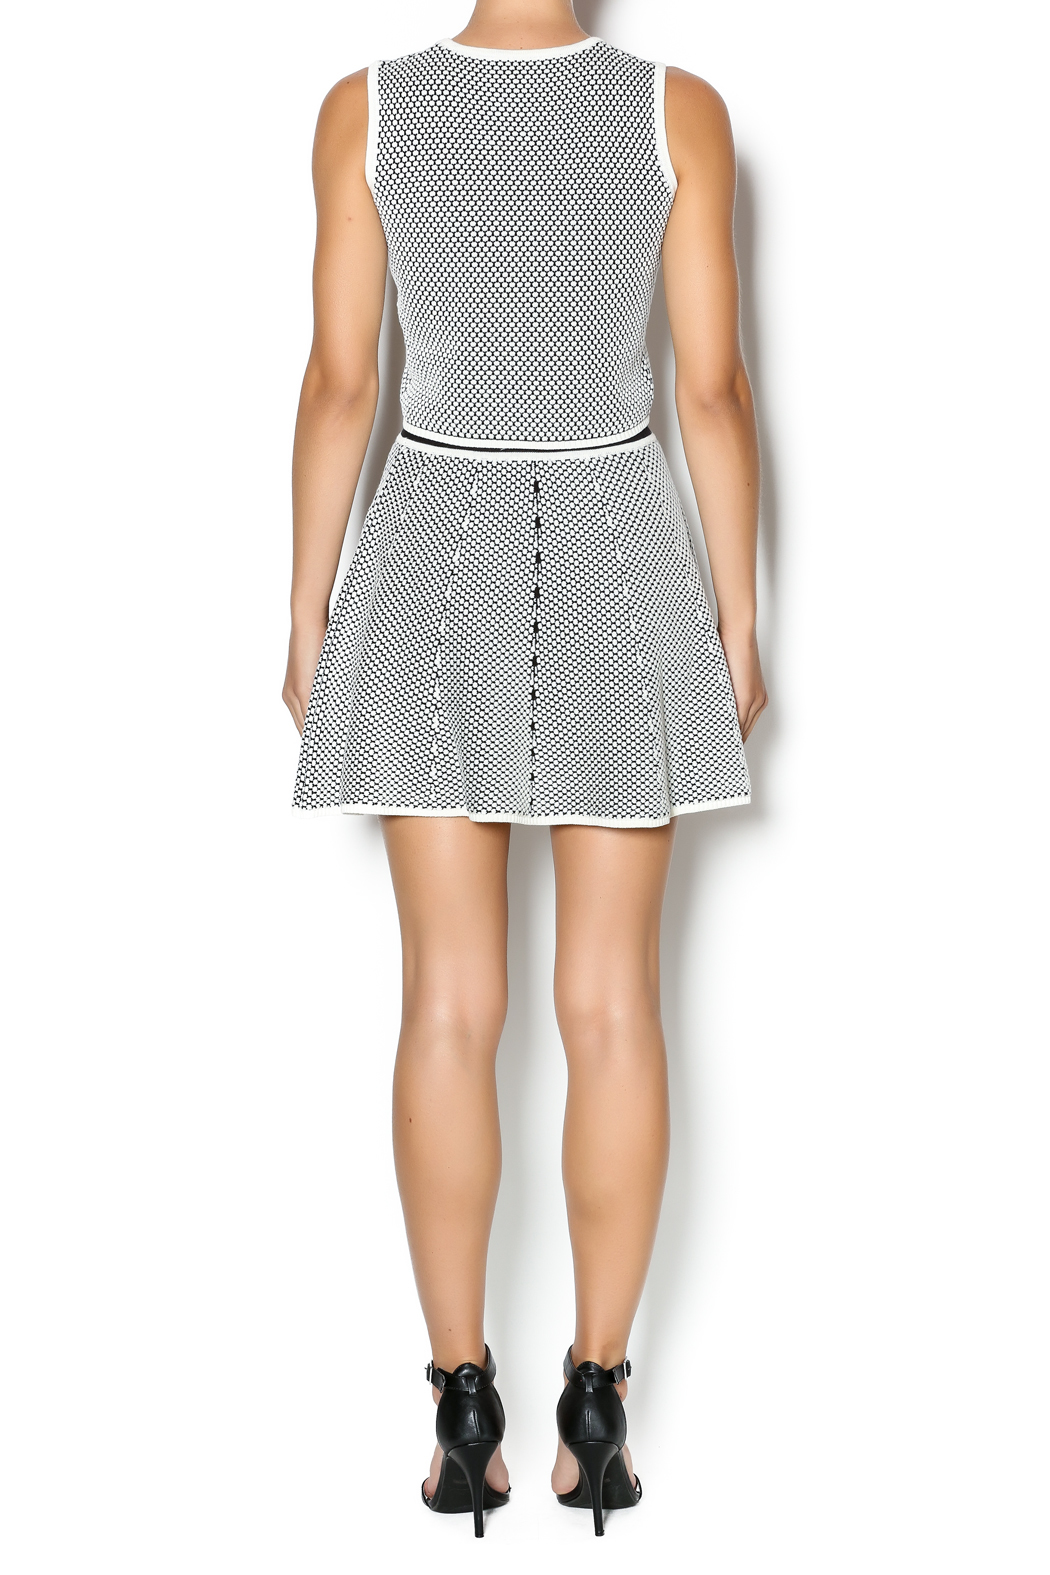 Lucy Paris Skater Skirt - Side Cropped Image